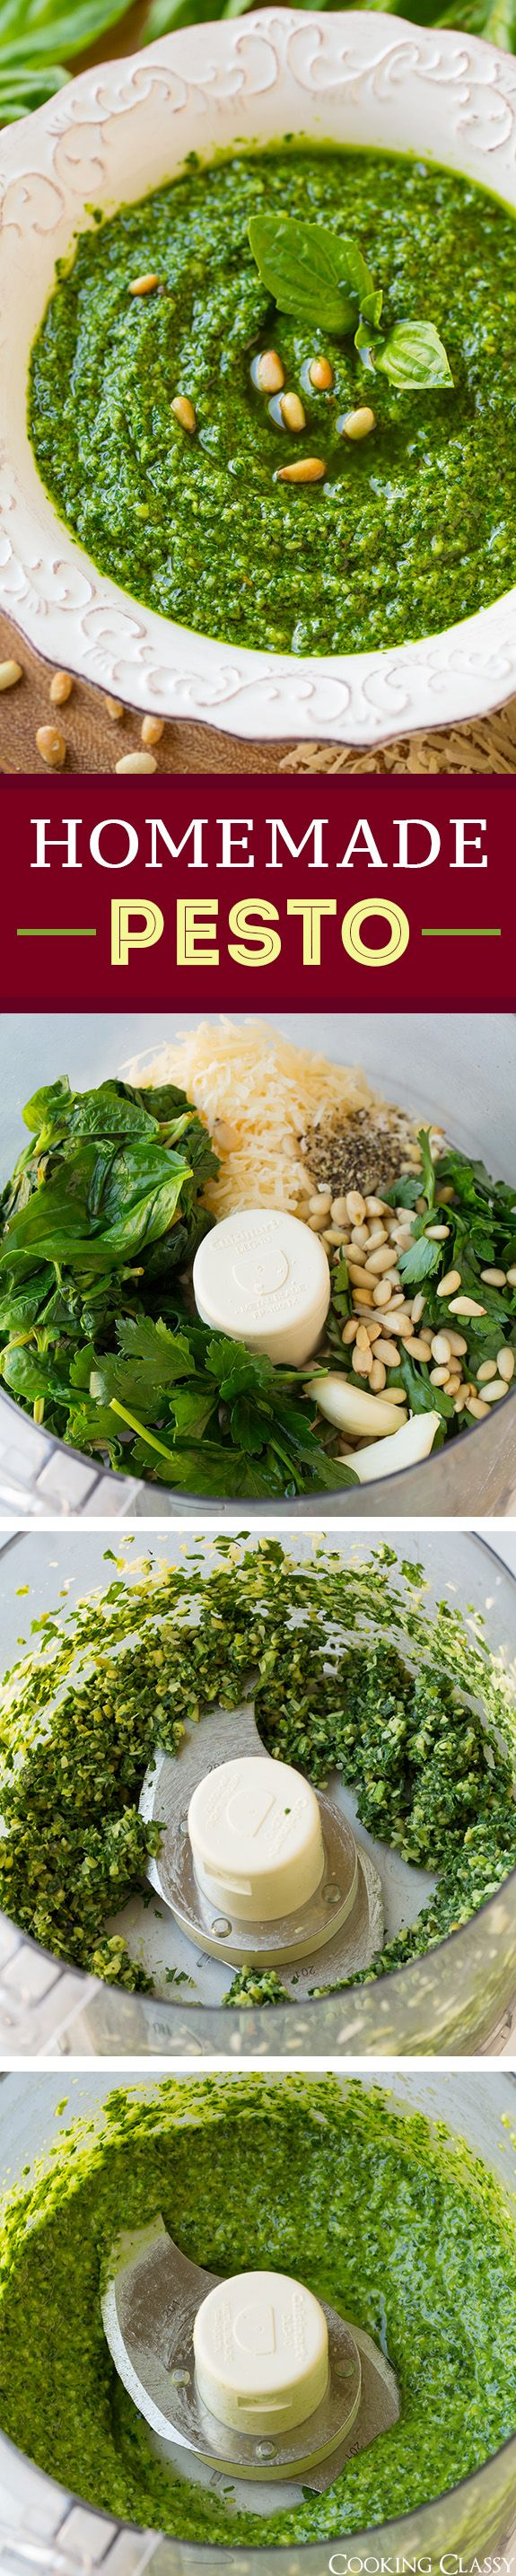 Homemade Basil Pesto (and how to keep it beautifully green) - this is my go to pesto recipe! I use it in so many different recipes or just add it to pasta with extra parm for a quick dinner.